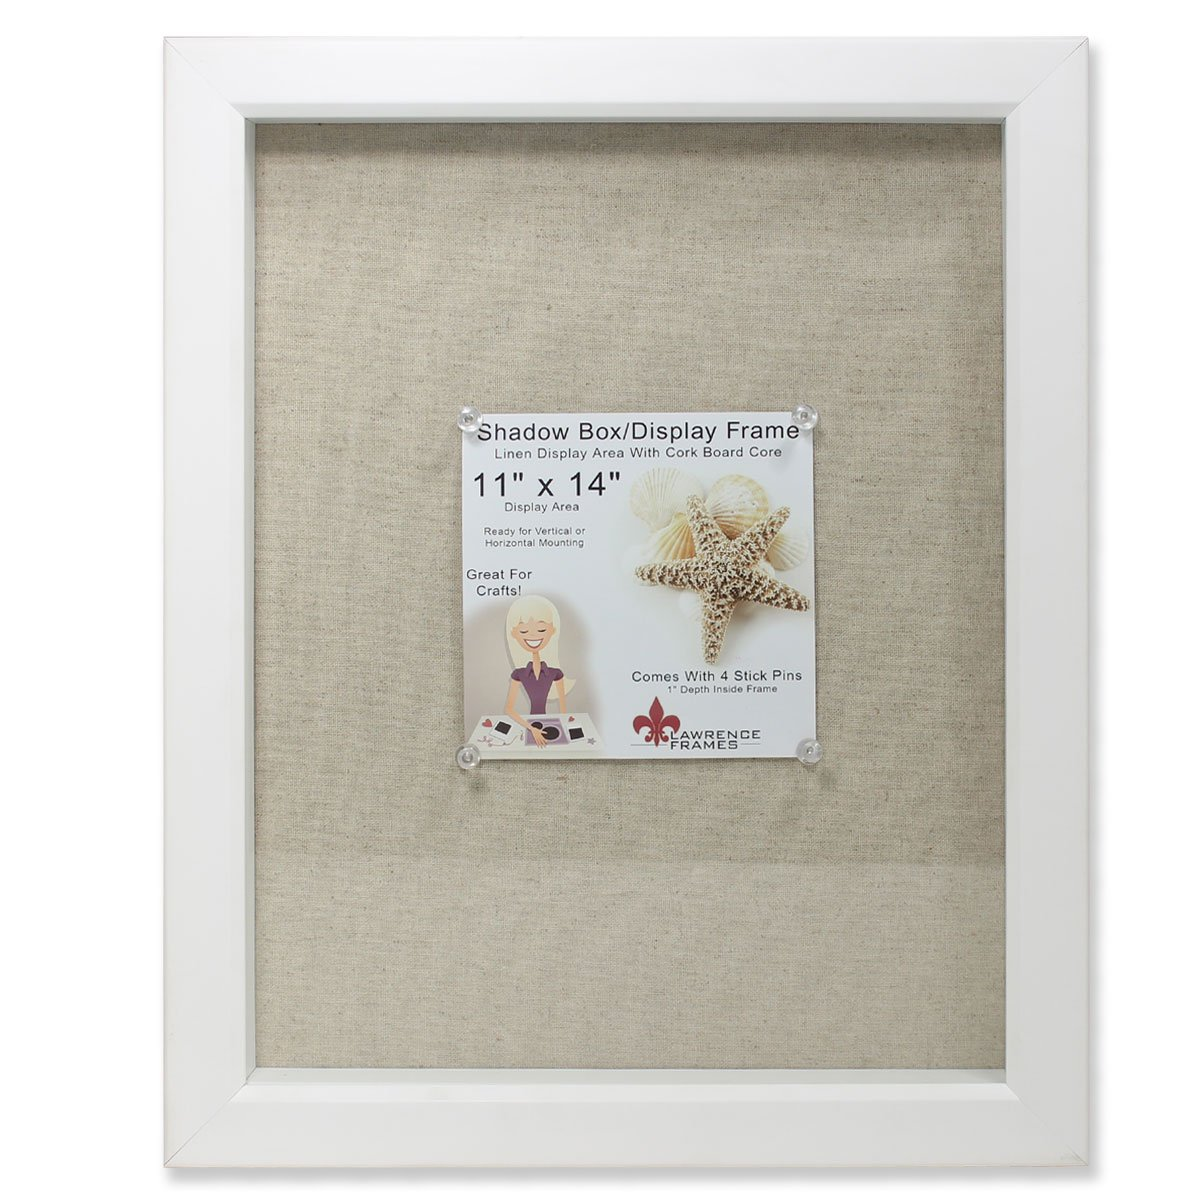 Lawrence Frames Shadow Box Frame with Linen Inner Display Board, 11 by 14-Inch, White by Lawrence Frames